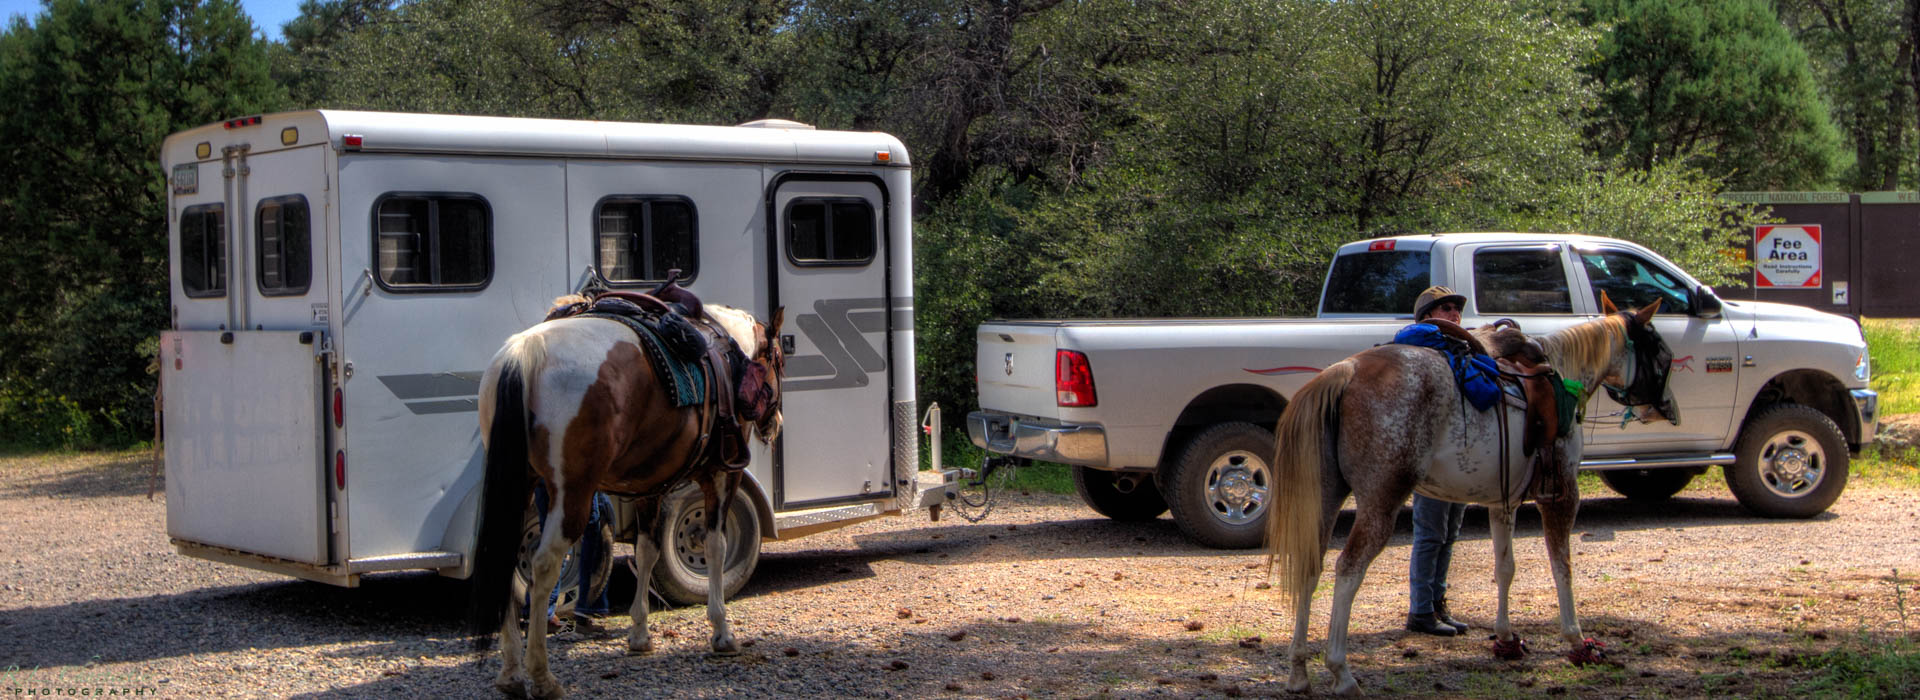 Horseback riding Granite Basin Recreation Area Prescott AZ